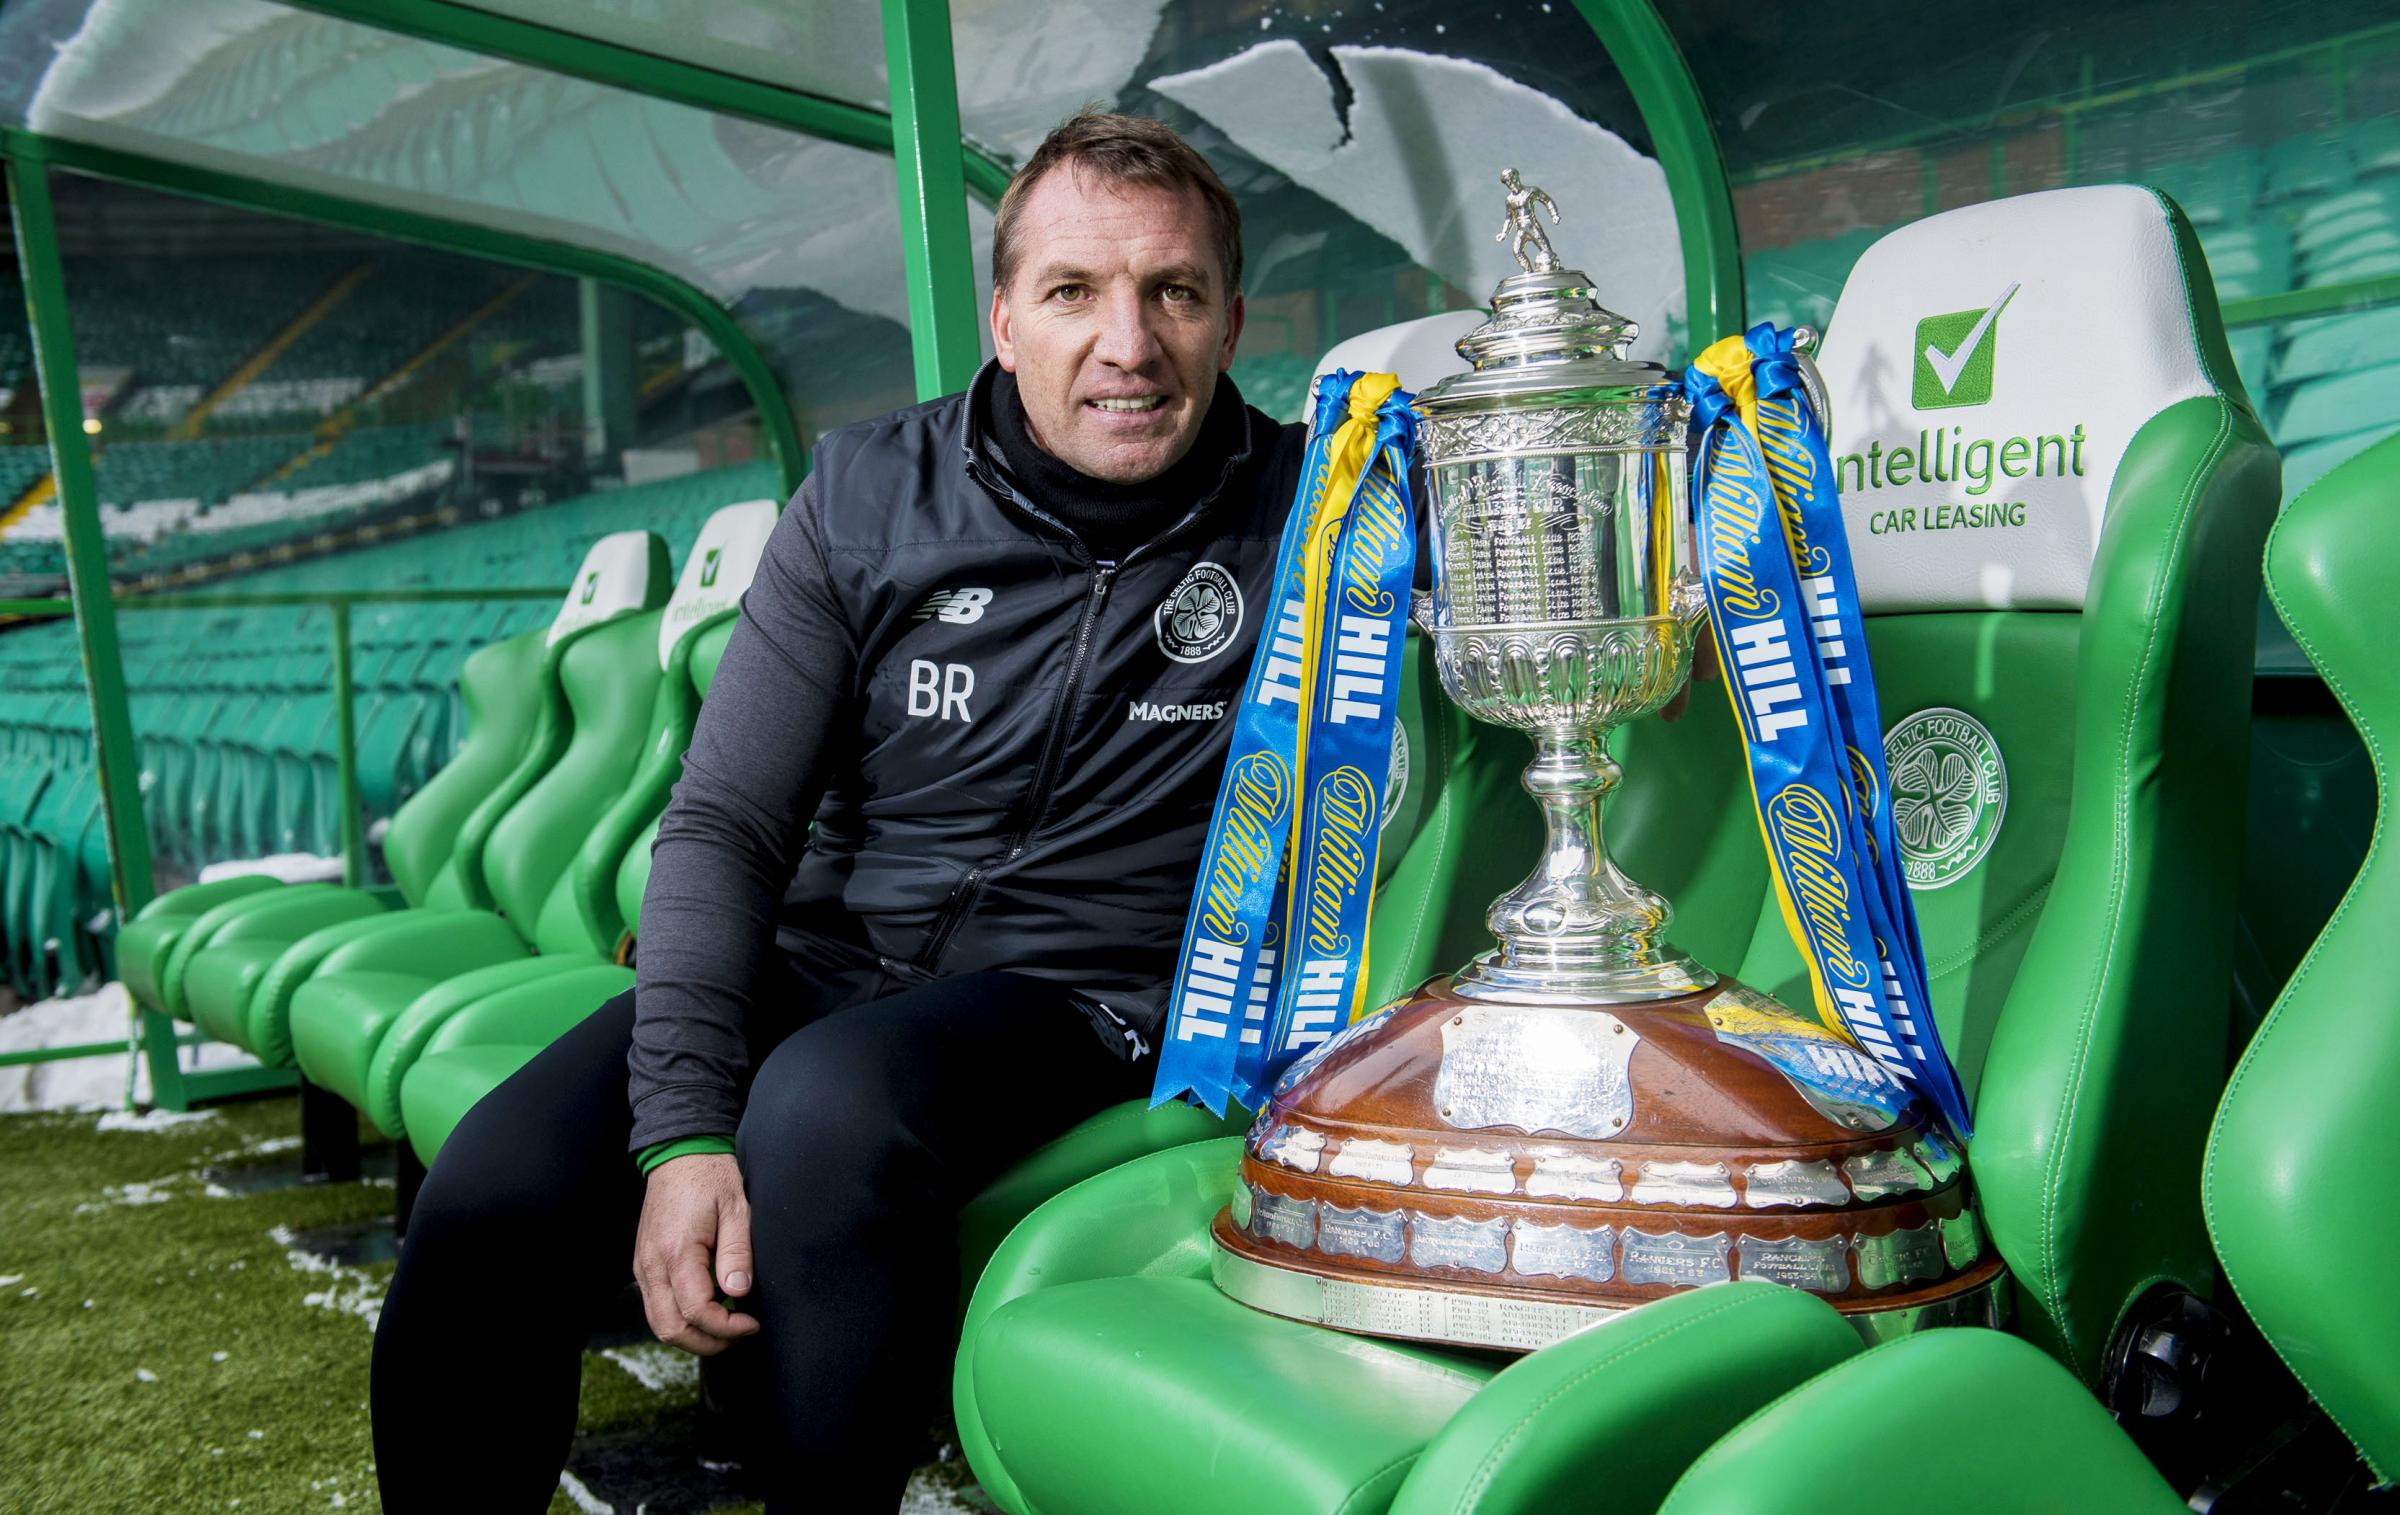 Celtic manager Brendan Rodgers has maintained he is happy at Celtic despite being linked with the Arsenal job